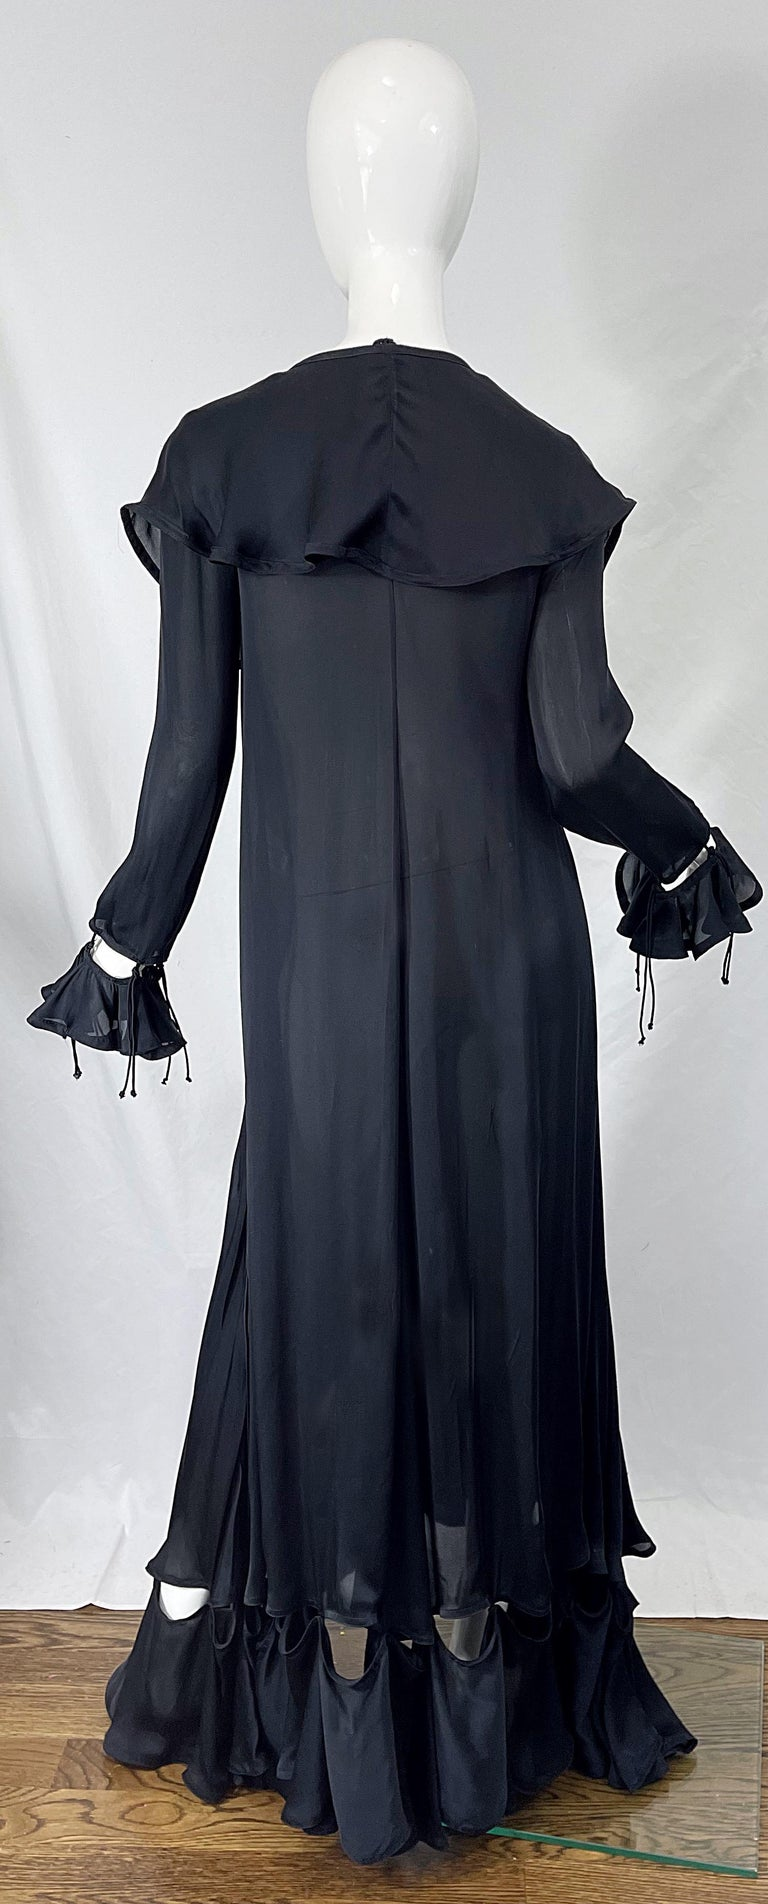 Yves Saint Laurent by Tom Ford Fall 2003 Runway Black Silk Chiffon Gown Size 38 For Sale 11